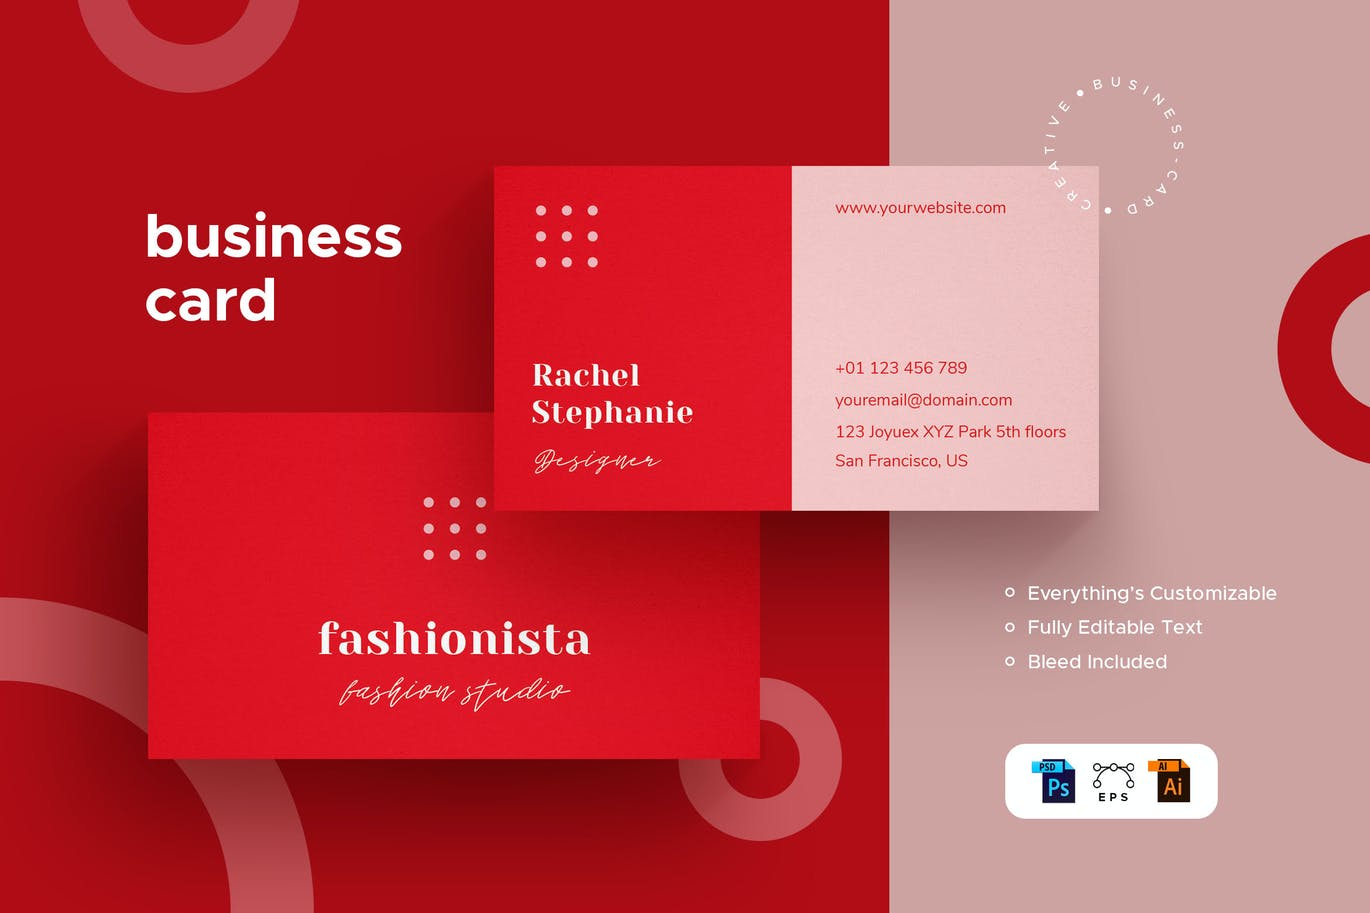 Fashionista - Business Card - Stationery Kit